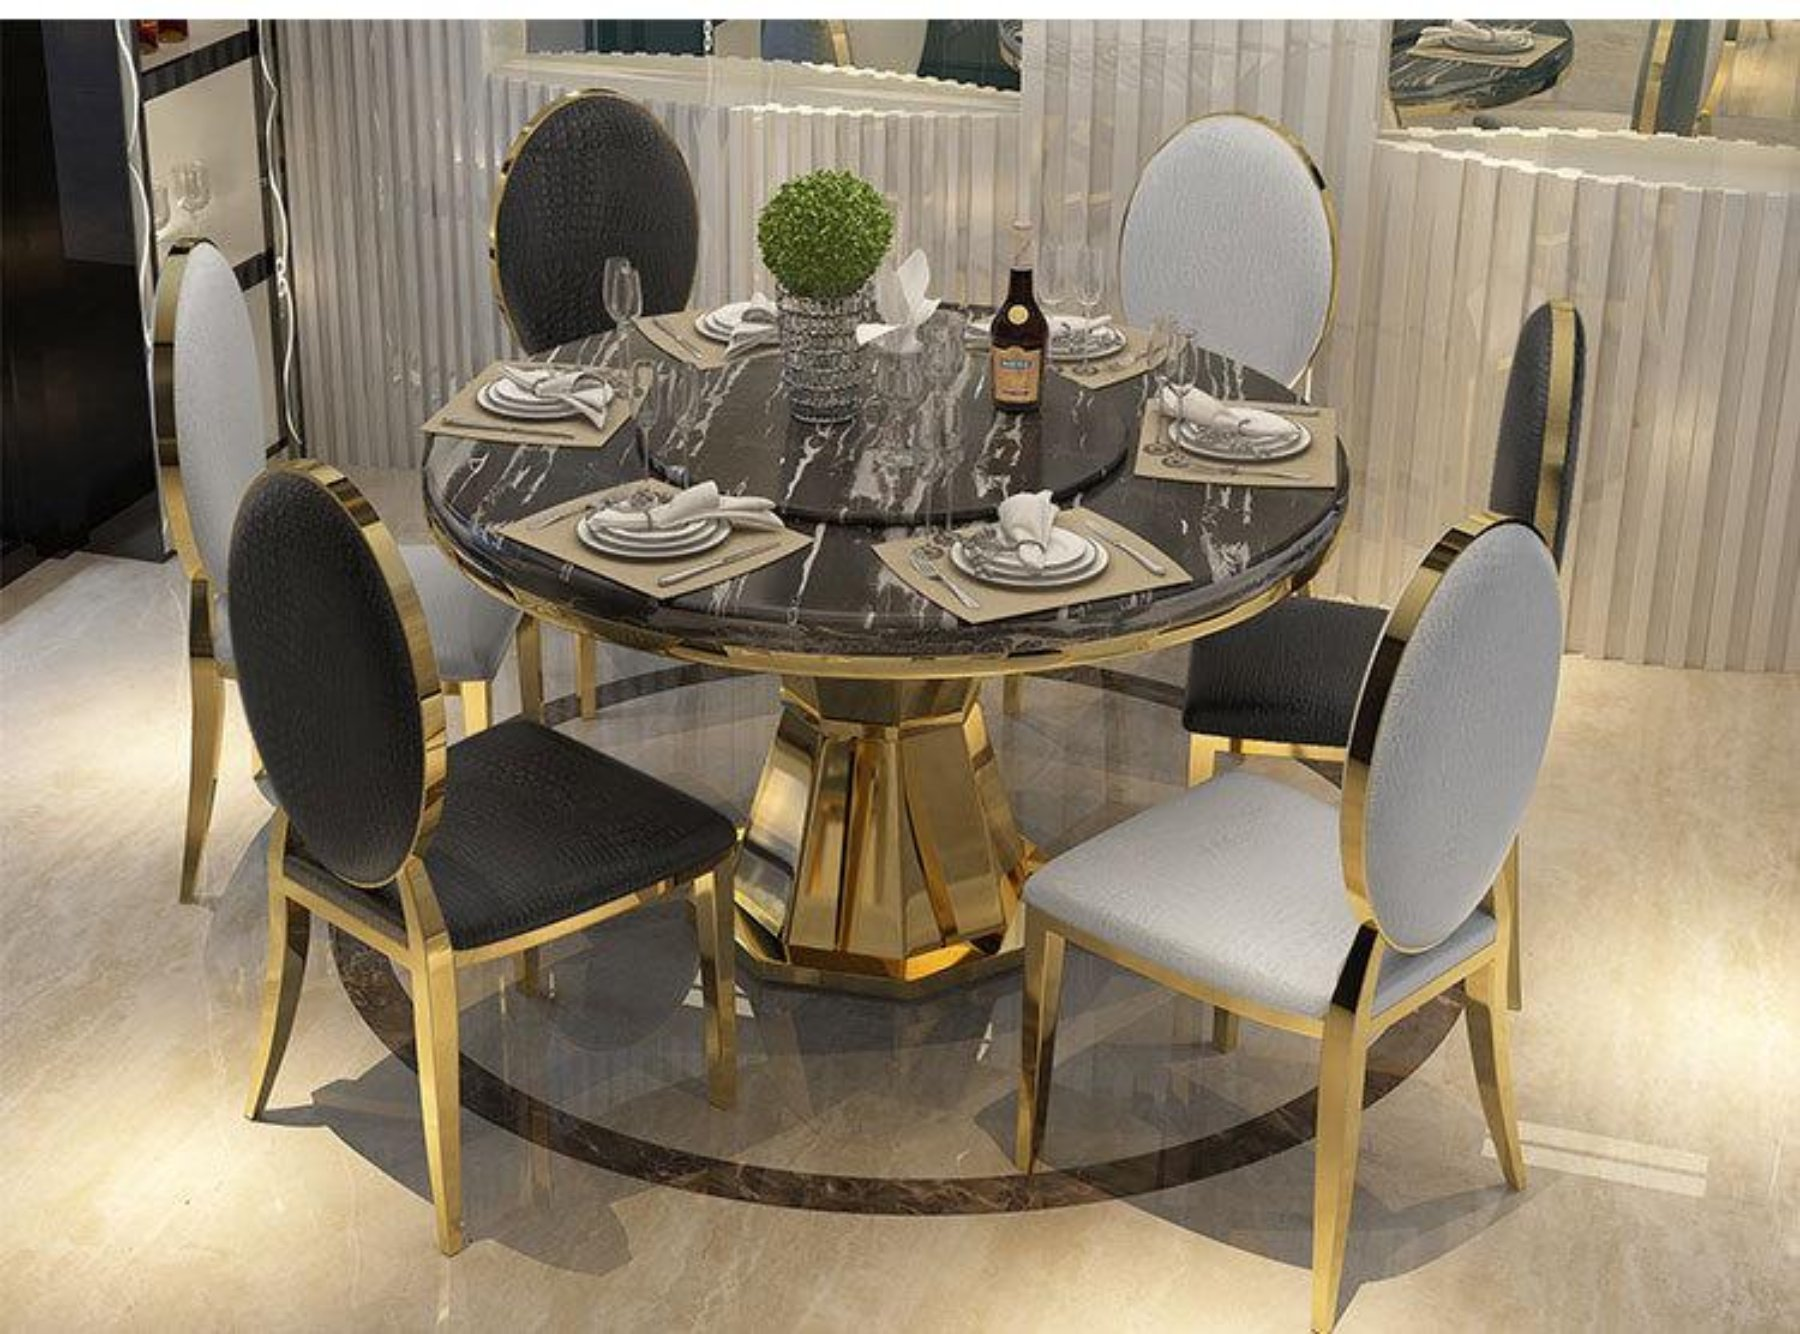 Golden Round Marble Top Dining Table With Luxury Chairs Marble Top Dining Table Dining Table Design Modern Glass Dining Table